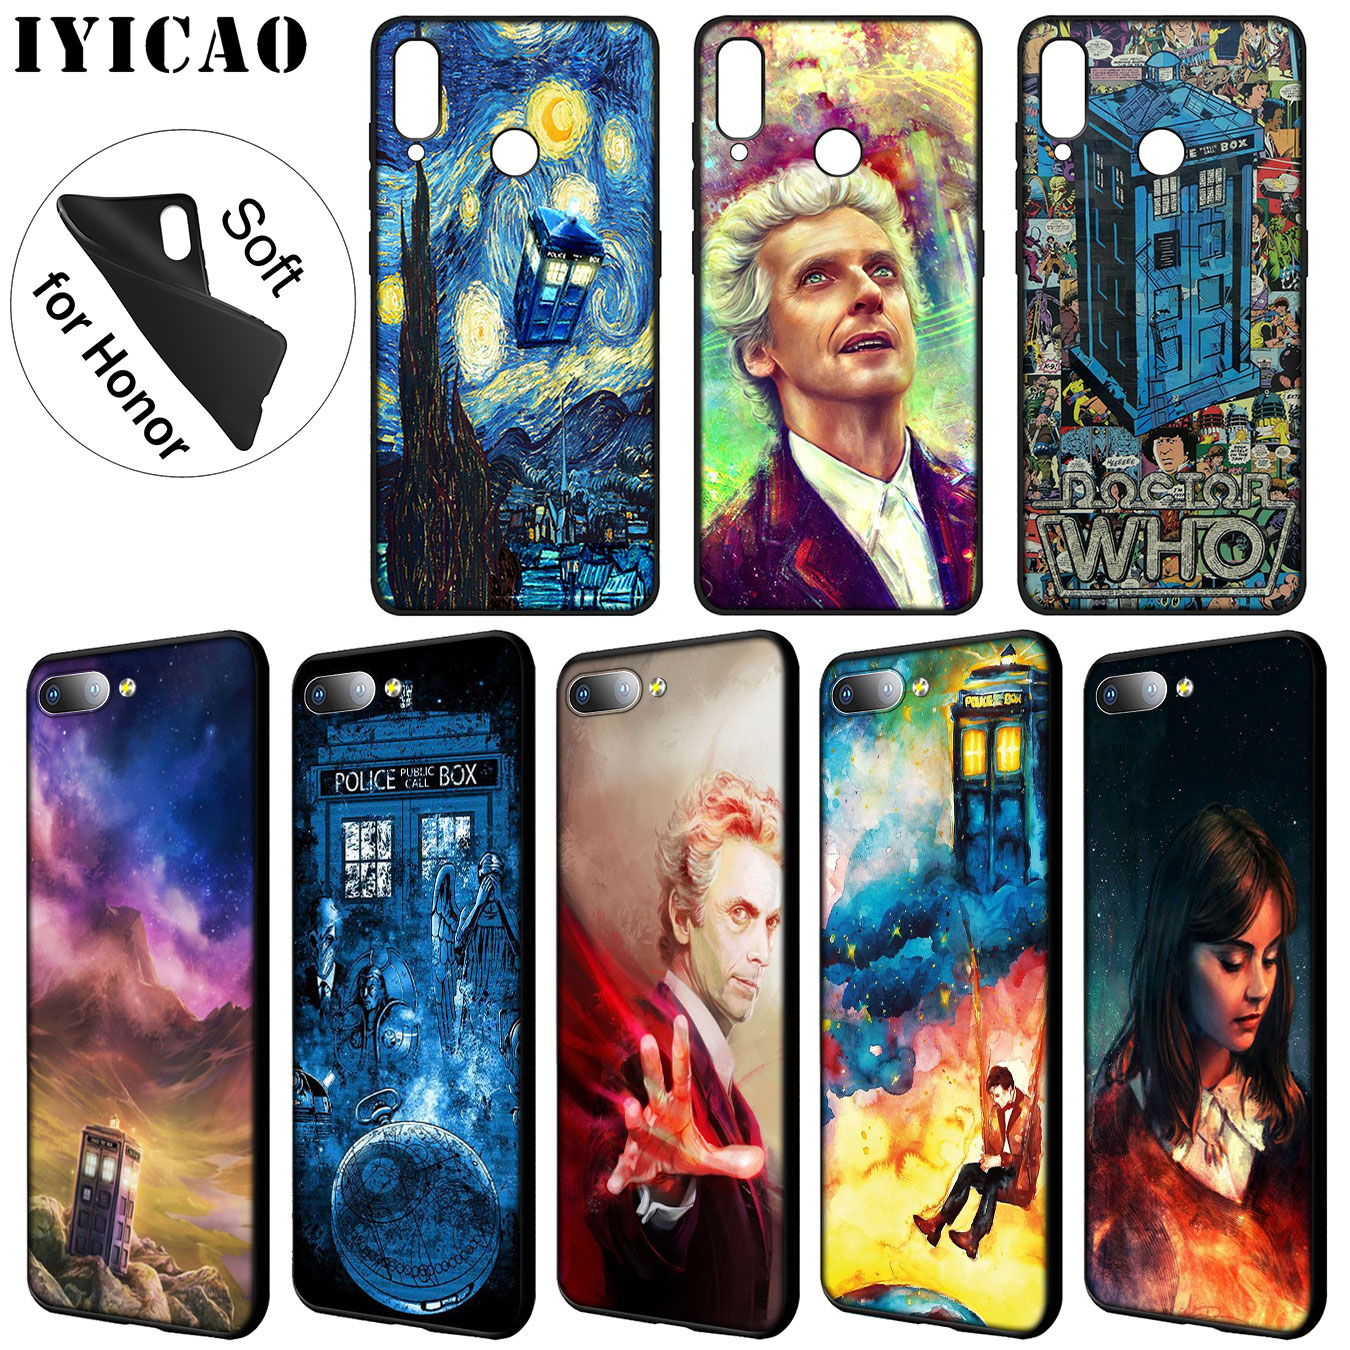 Obliging Iyicao Tardis Box Doctor Who Soft Silicone Phone Case For Huawei Y7 Y6 Prime Y9 2018 Y5 Honor 8c 8x 8 9 10 Lite 7c 7x 6a 7a Pro Sale Price Phone Bags & Cases